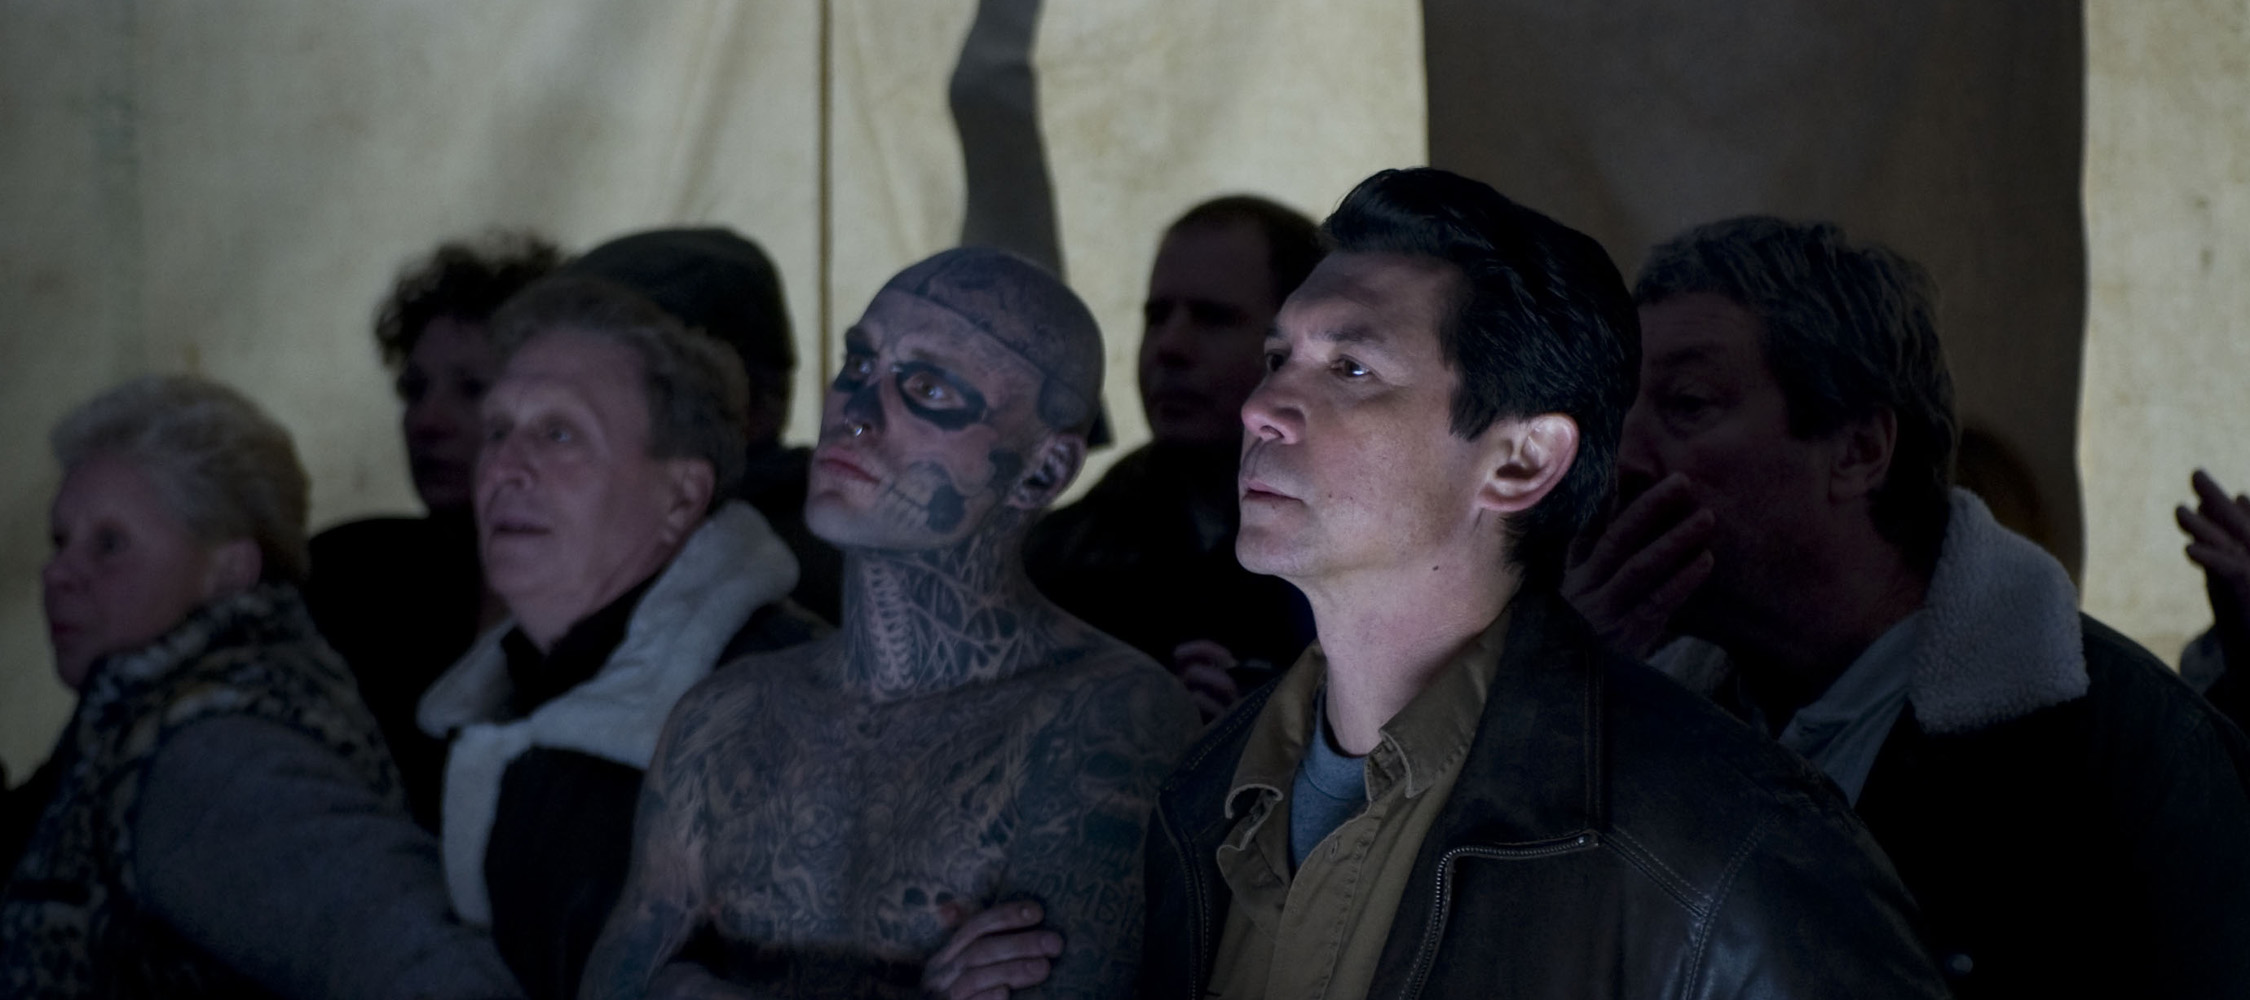 Lou Diamond Phillips and Rick Genest in Carny (2009)